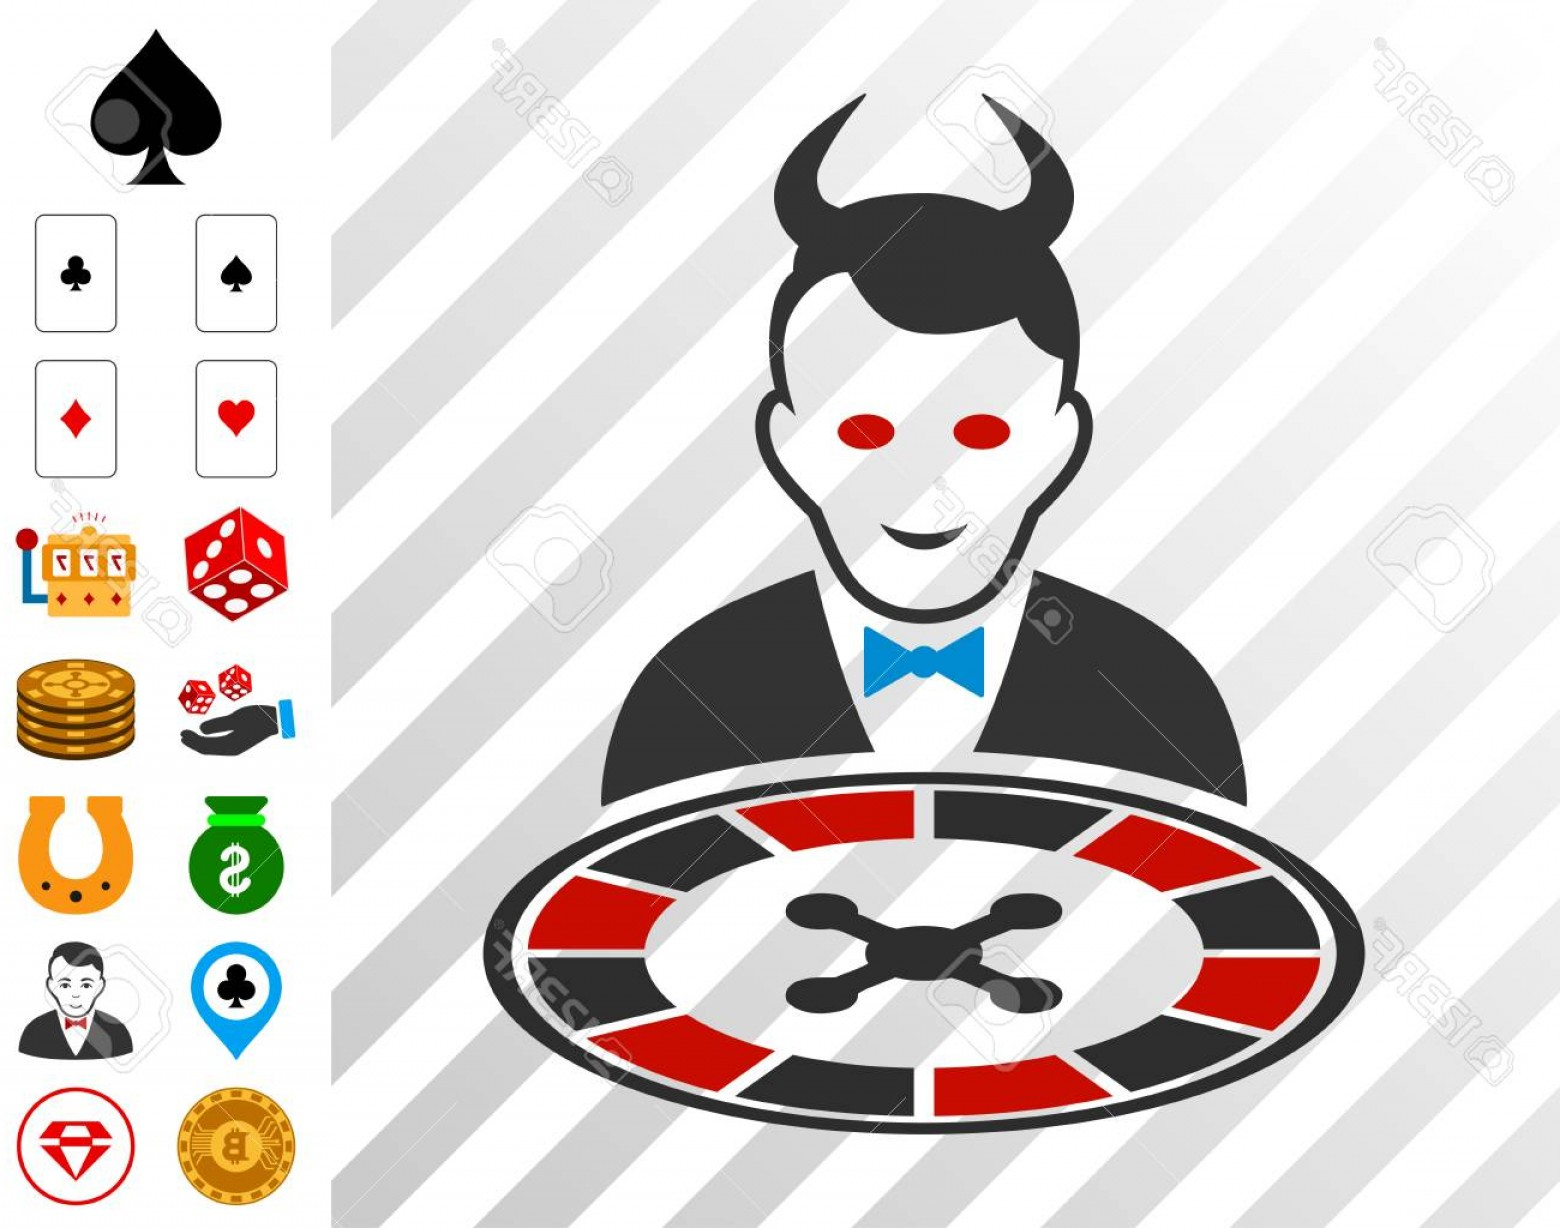 Gambler Vector Art Images: Photostock Vector Devil Roulette Dealer Icon With Bonus Gambling Pictures Vector Illustration Style In Flat Iconic Sym